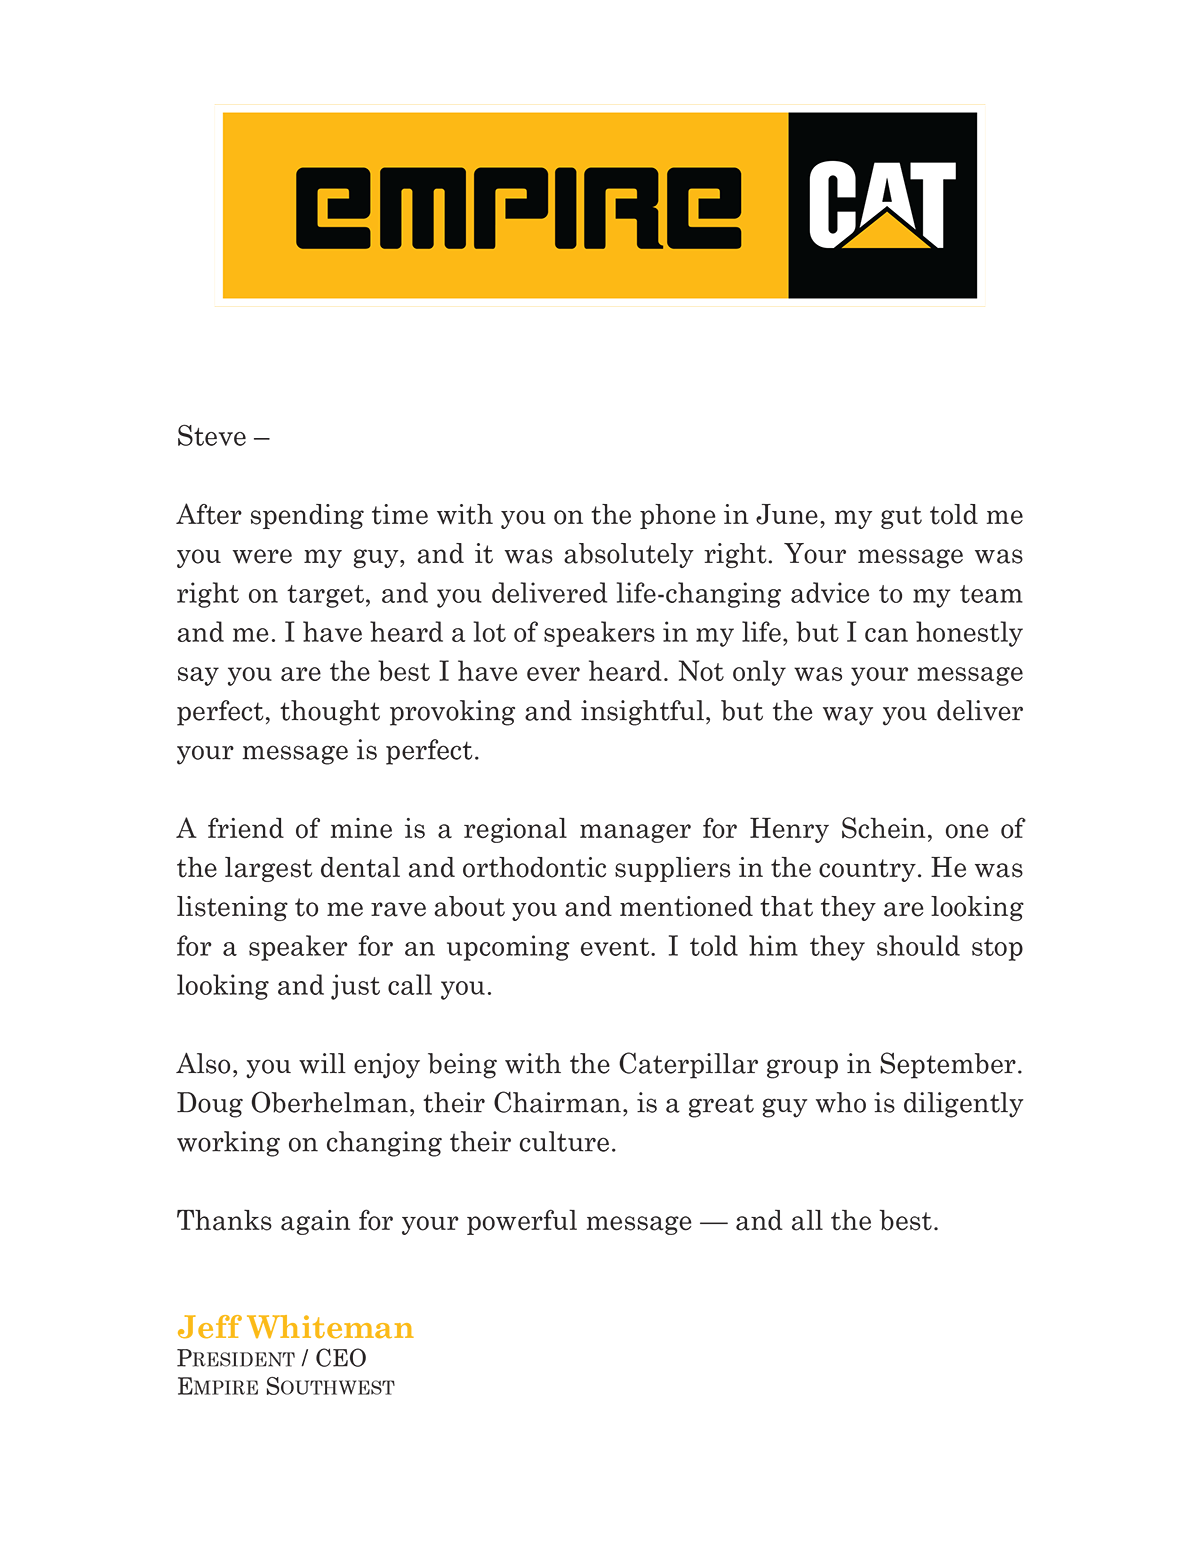 Empire Southwest